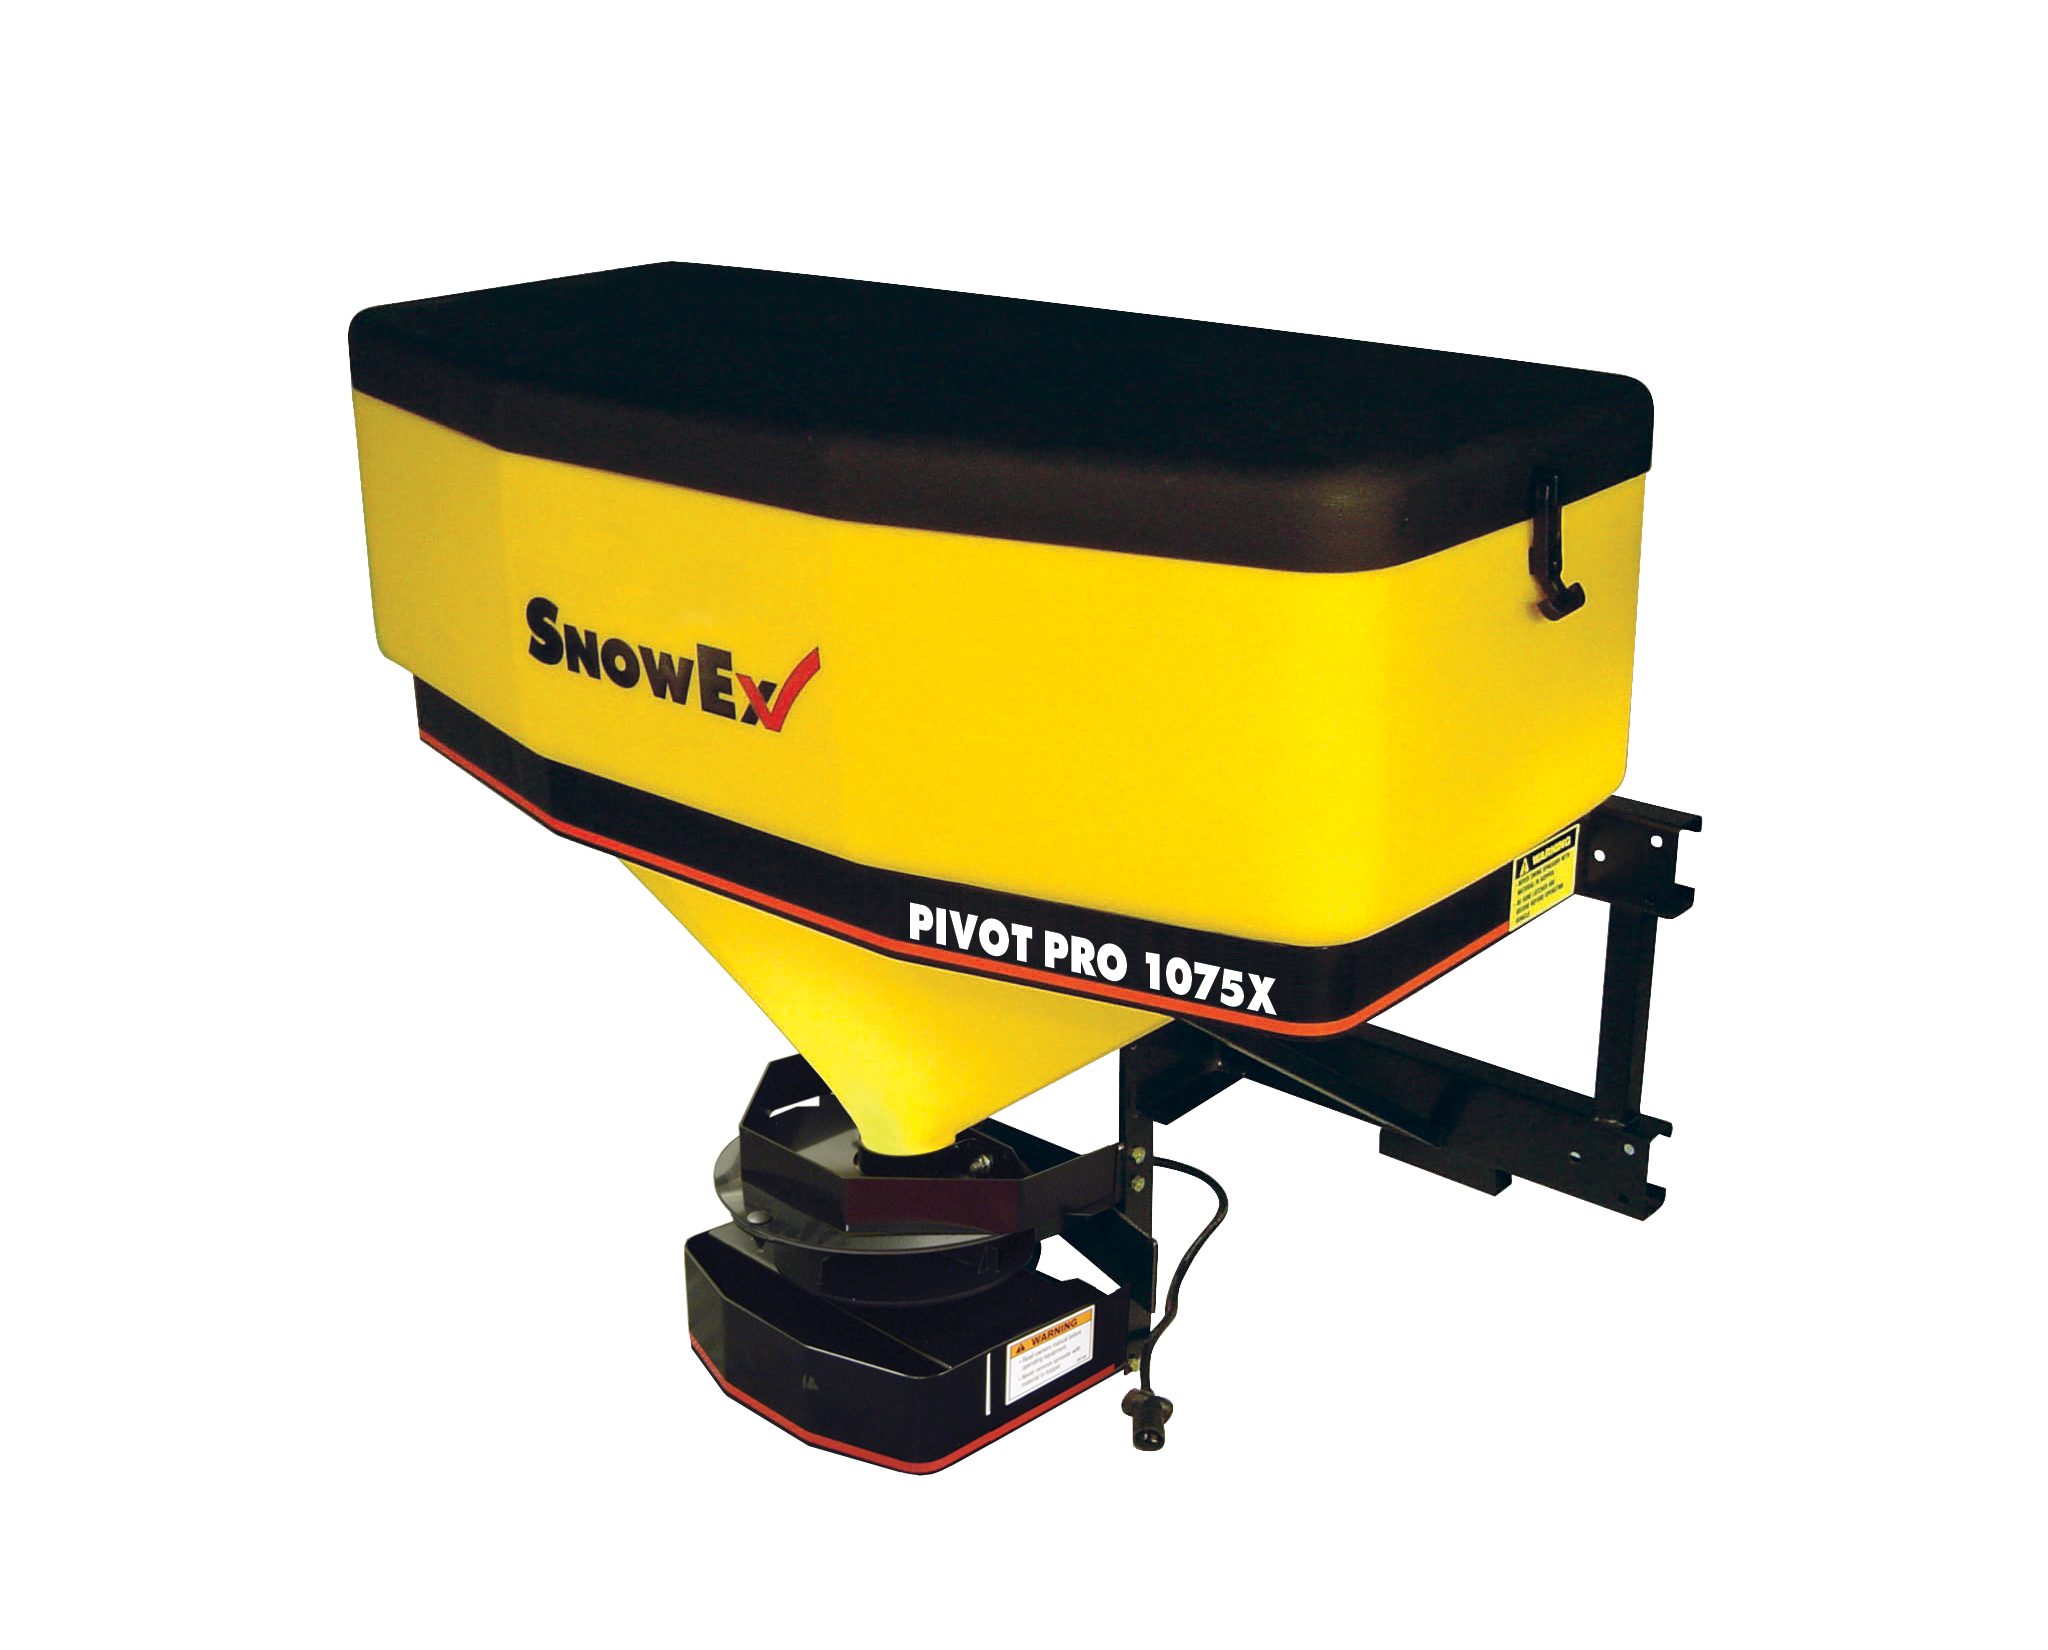 3.0 cu Tailgate Spreader ft Spread Width 2 Receiver Mount Type Up to 20 ft Capacity